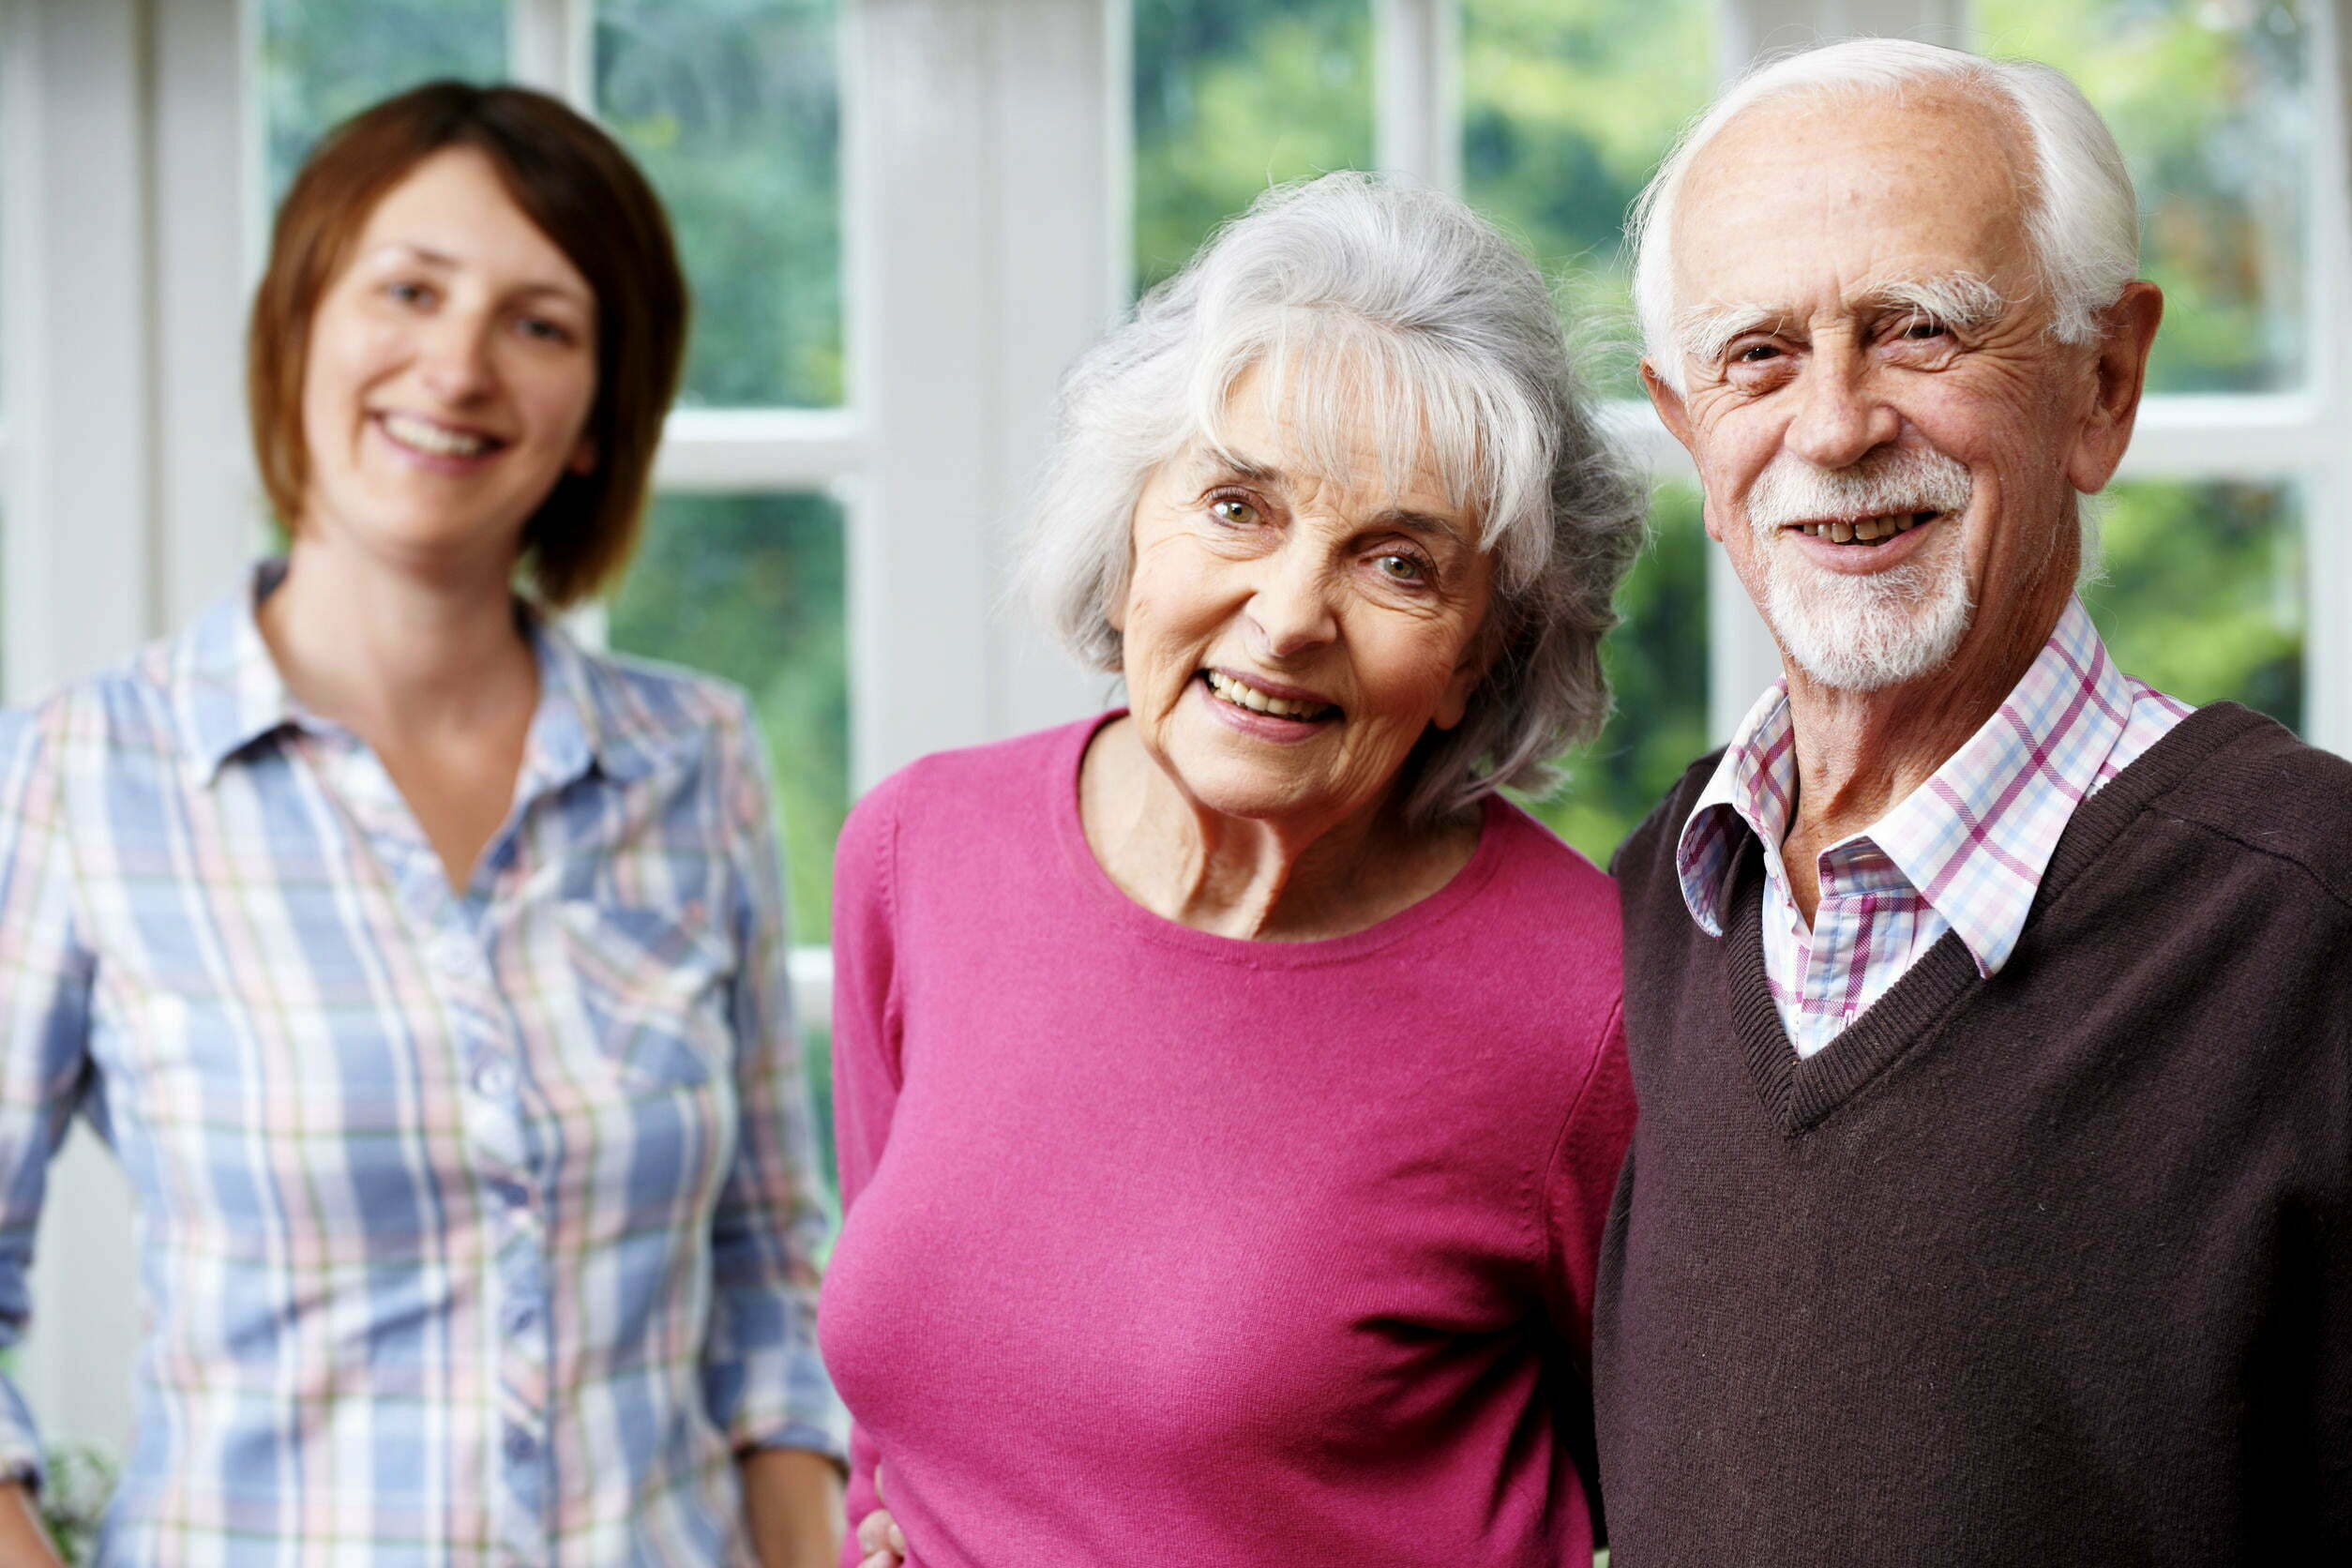 Is home a safe place for aging parents